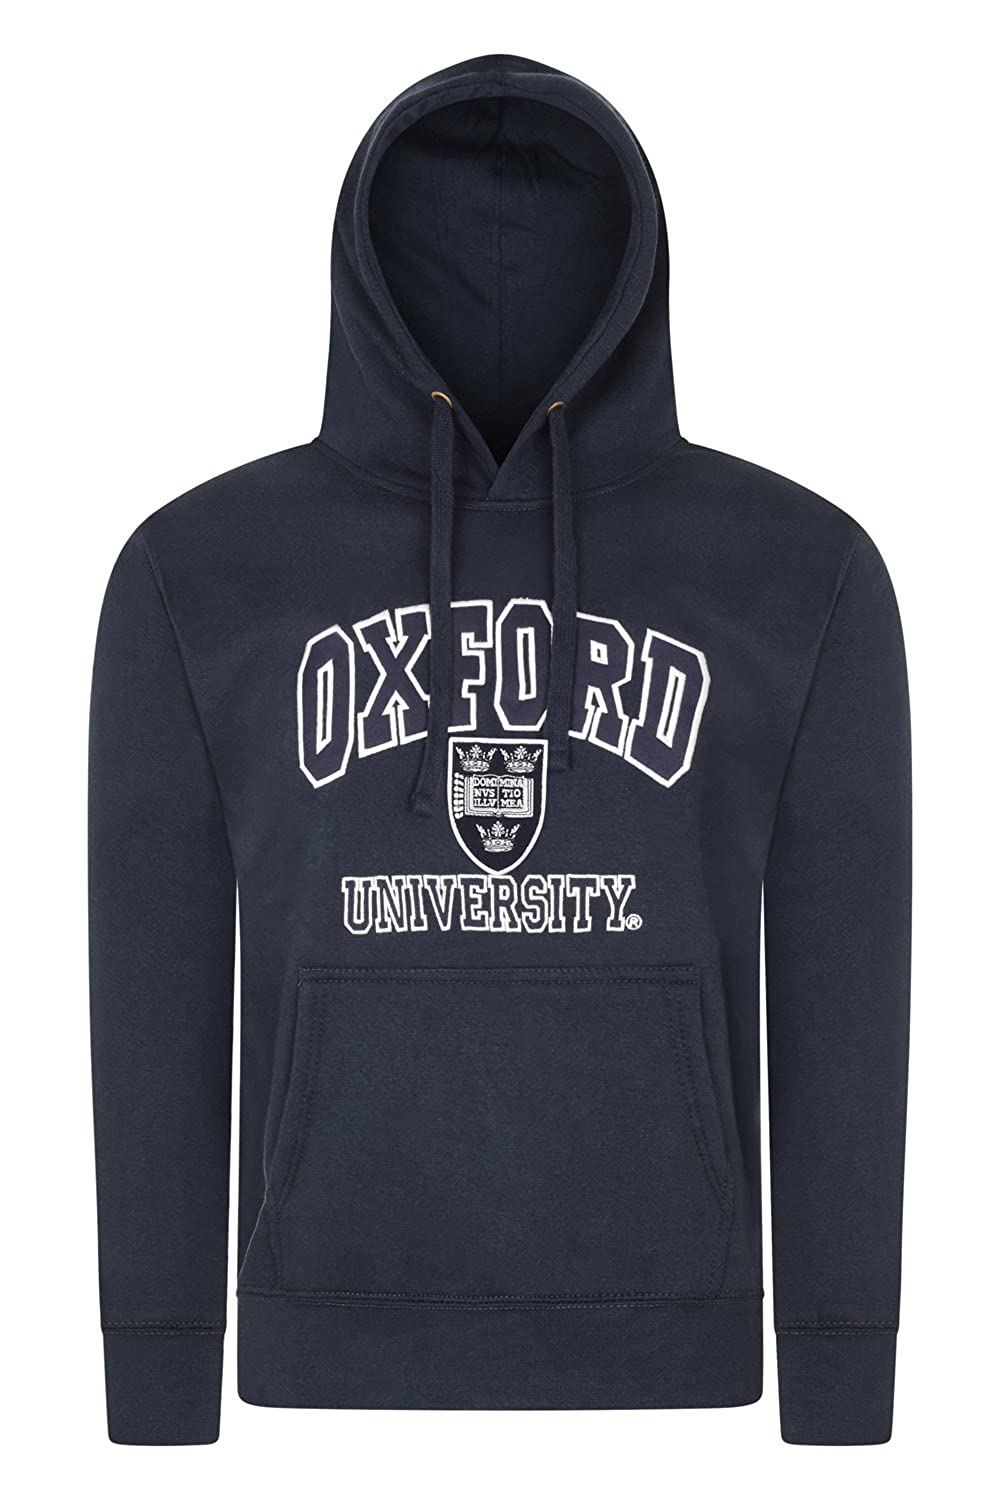 Oxford University Quality Embroidered Hooded Sweatshirt